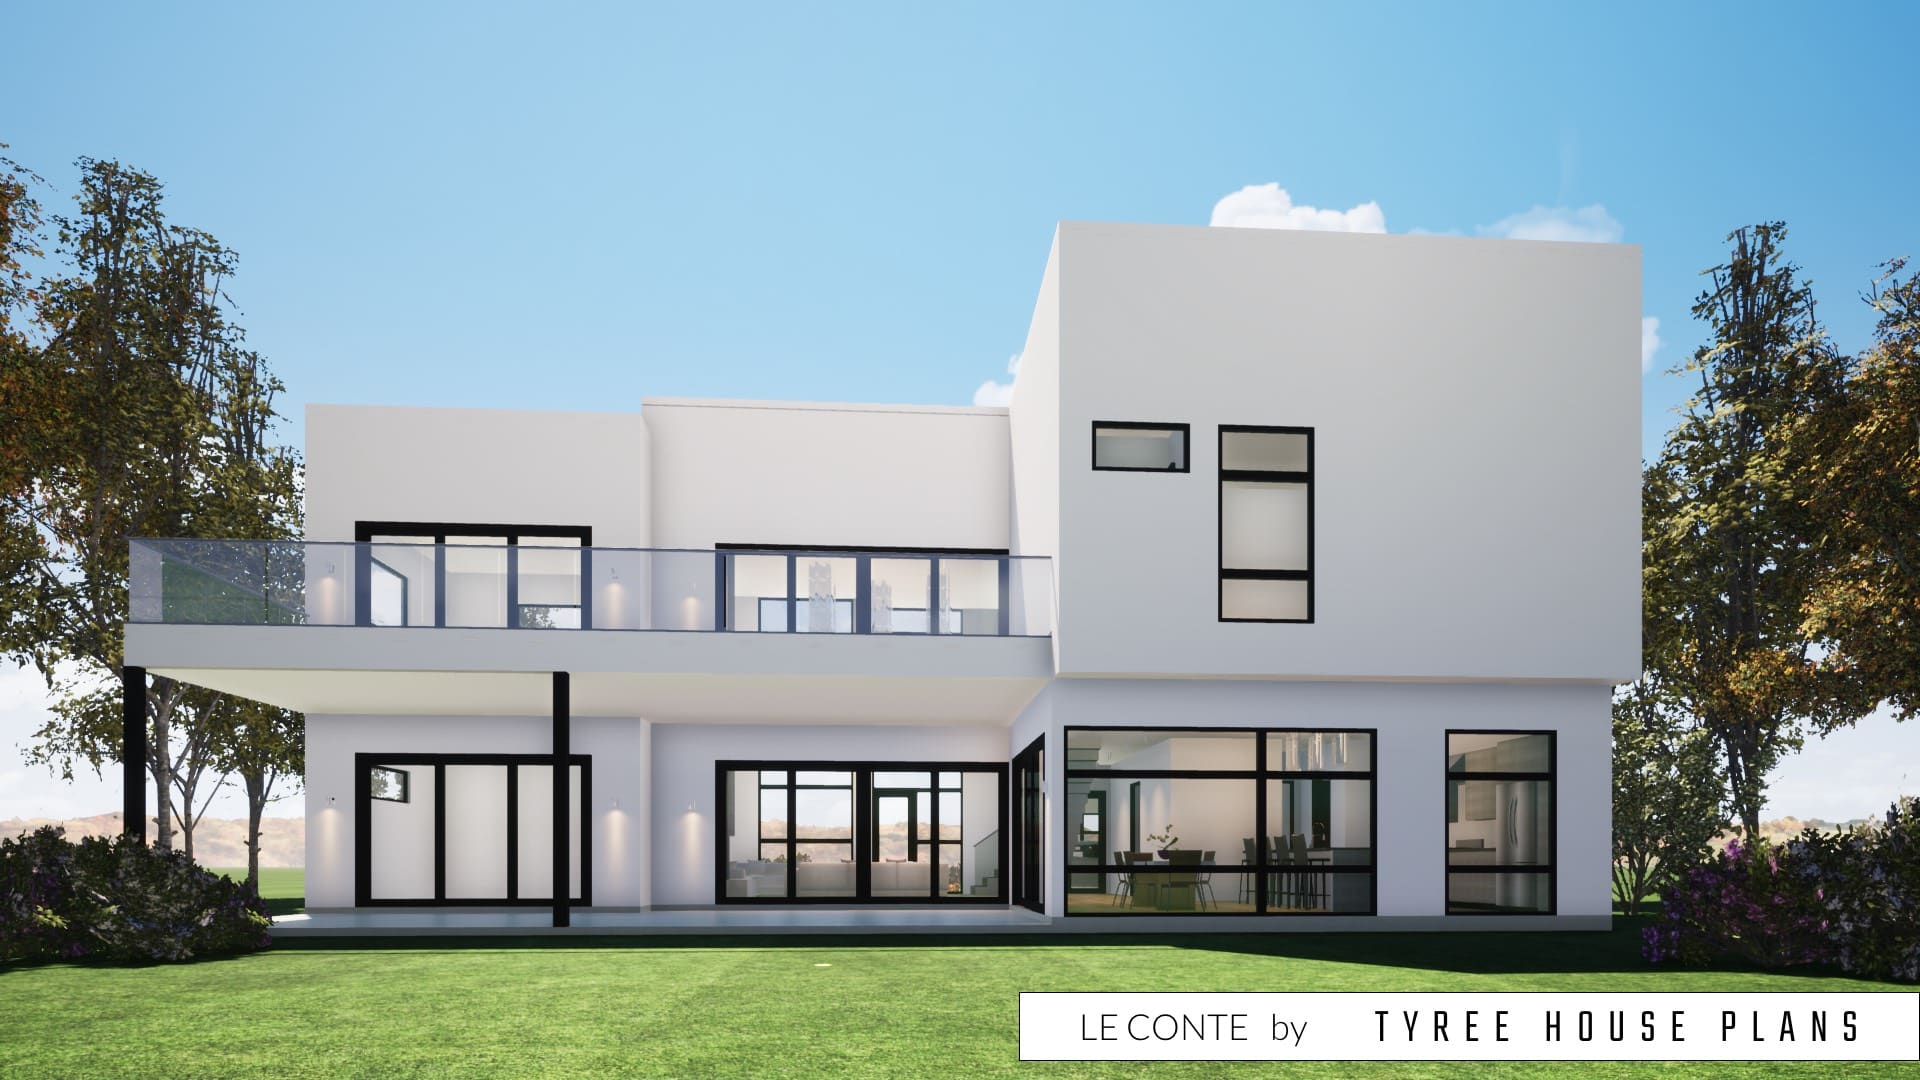 Le Conte House Plan by Tyree House Plans